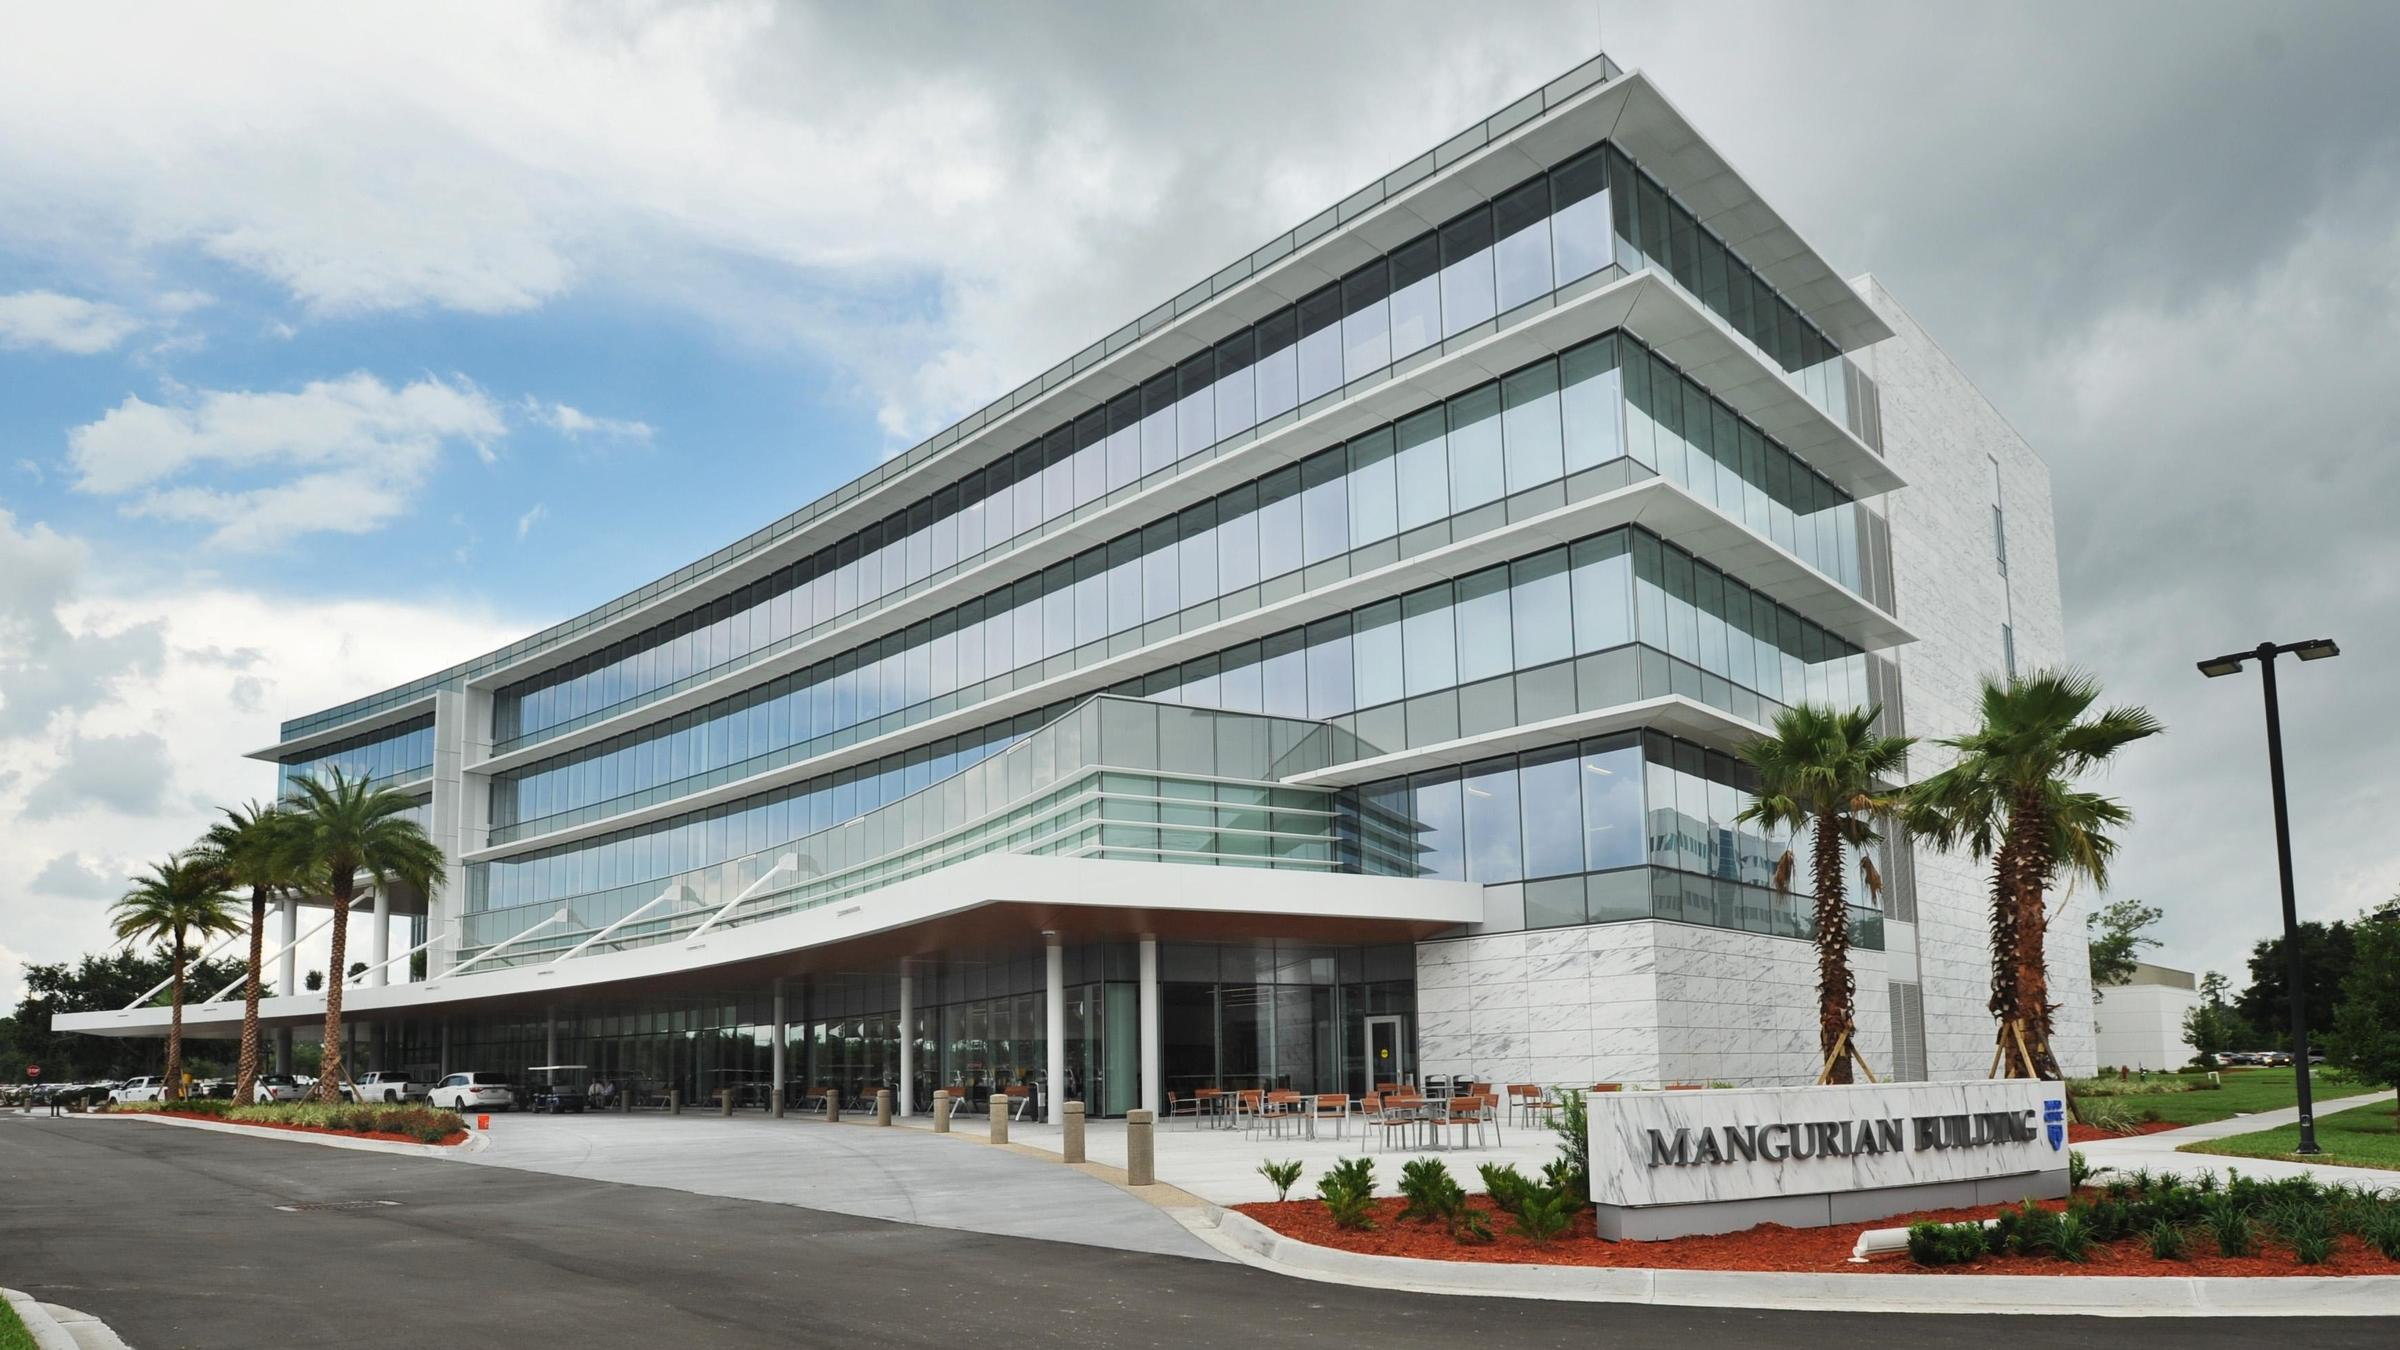 Gas Prices In Florida >> 2 New Buildings Enhance Mayo Clinic's Status As 'Destination Medical Center' in Jacksonville ...